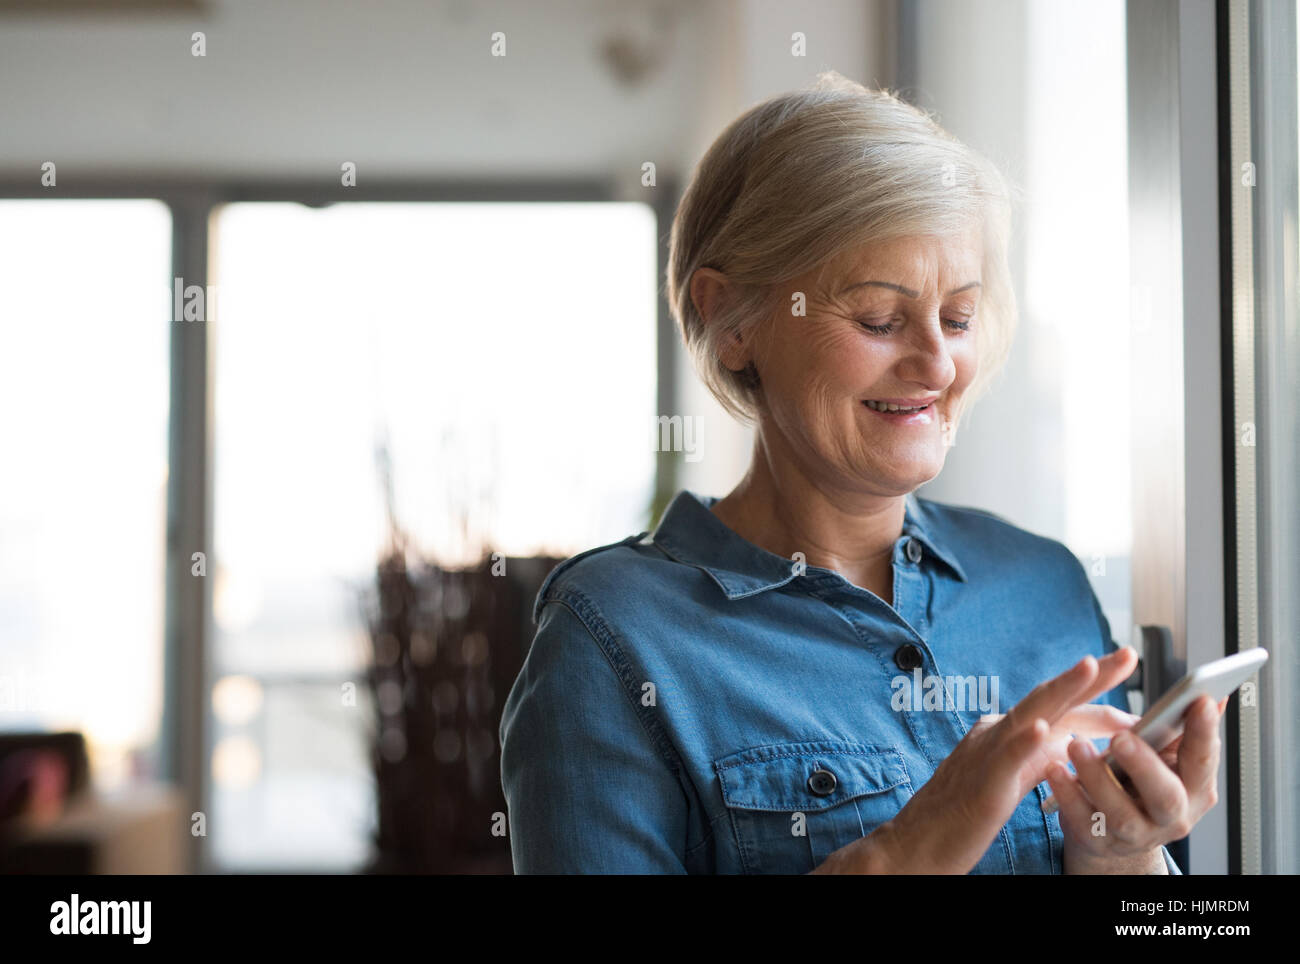 Senior woman with smartphone at home standing at the window - Stock Image